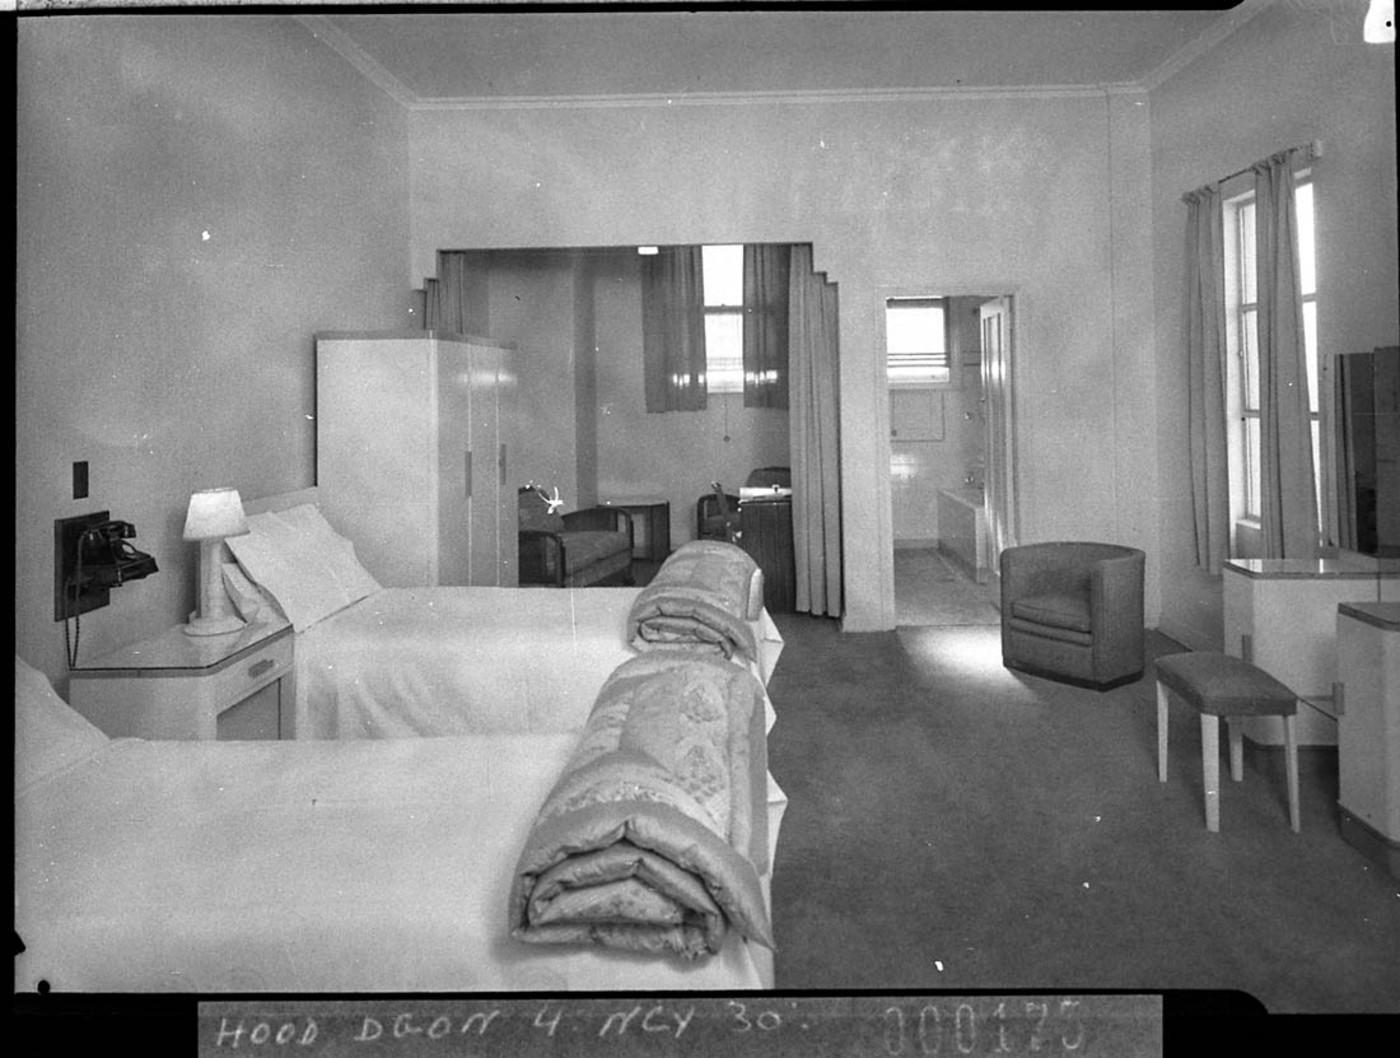 Chambre D Hote Barbizon File Slnsw 11917 One Of The Bedrooms Showing Bathroom And